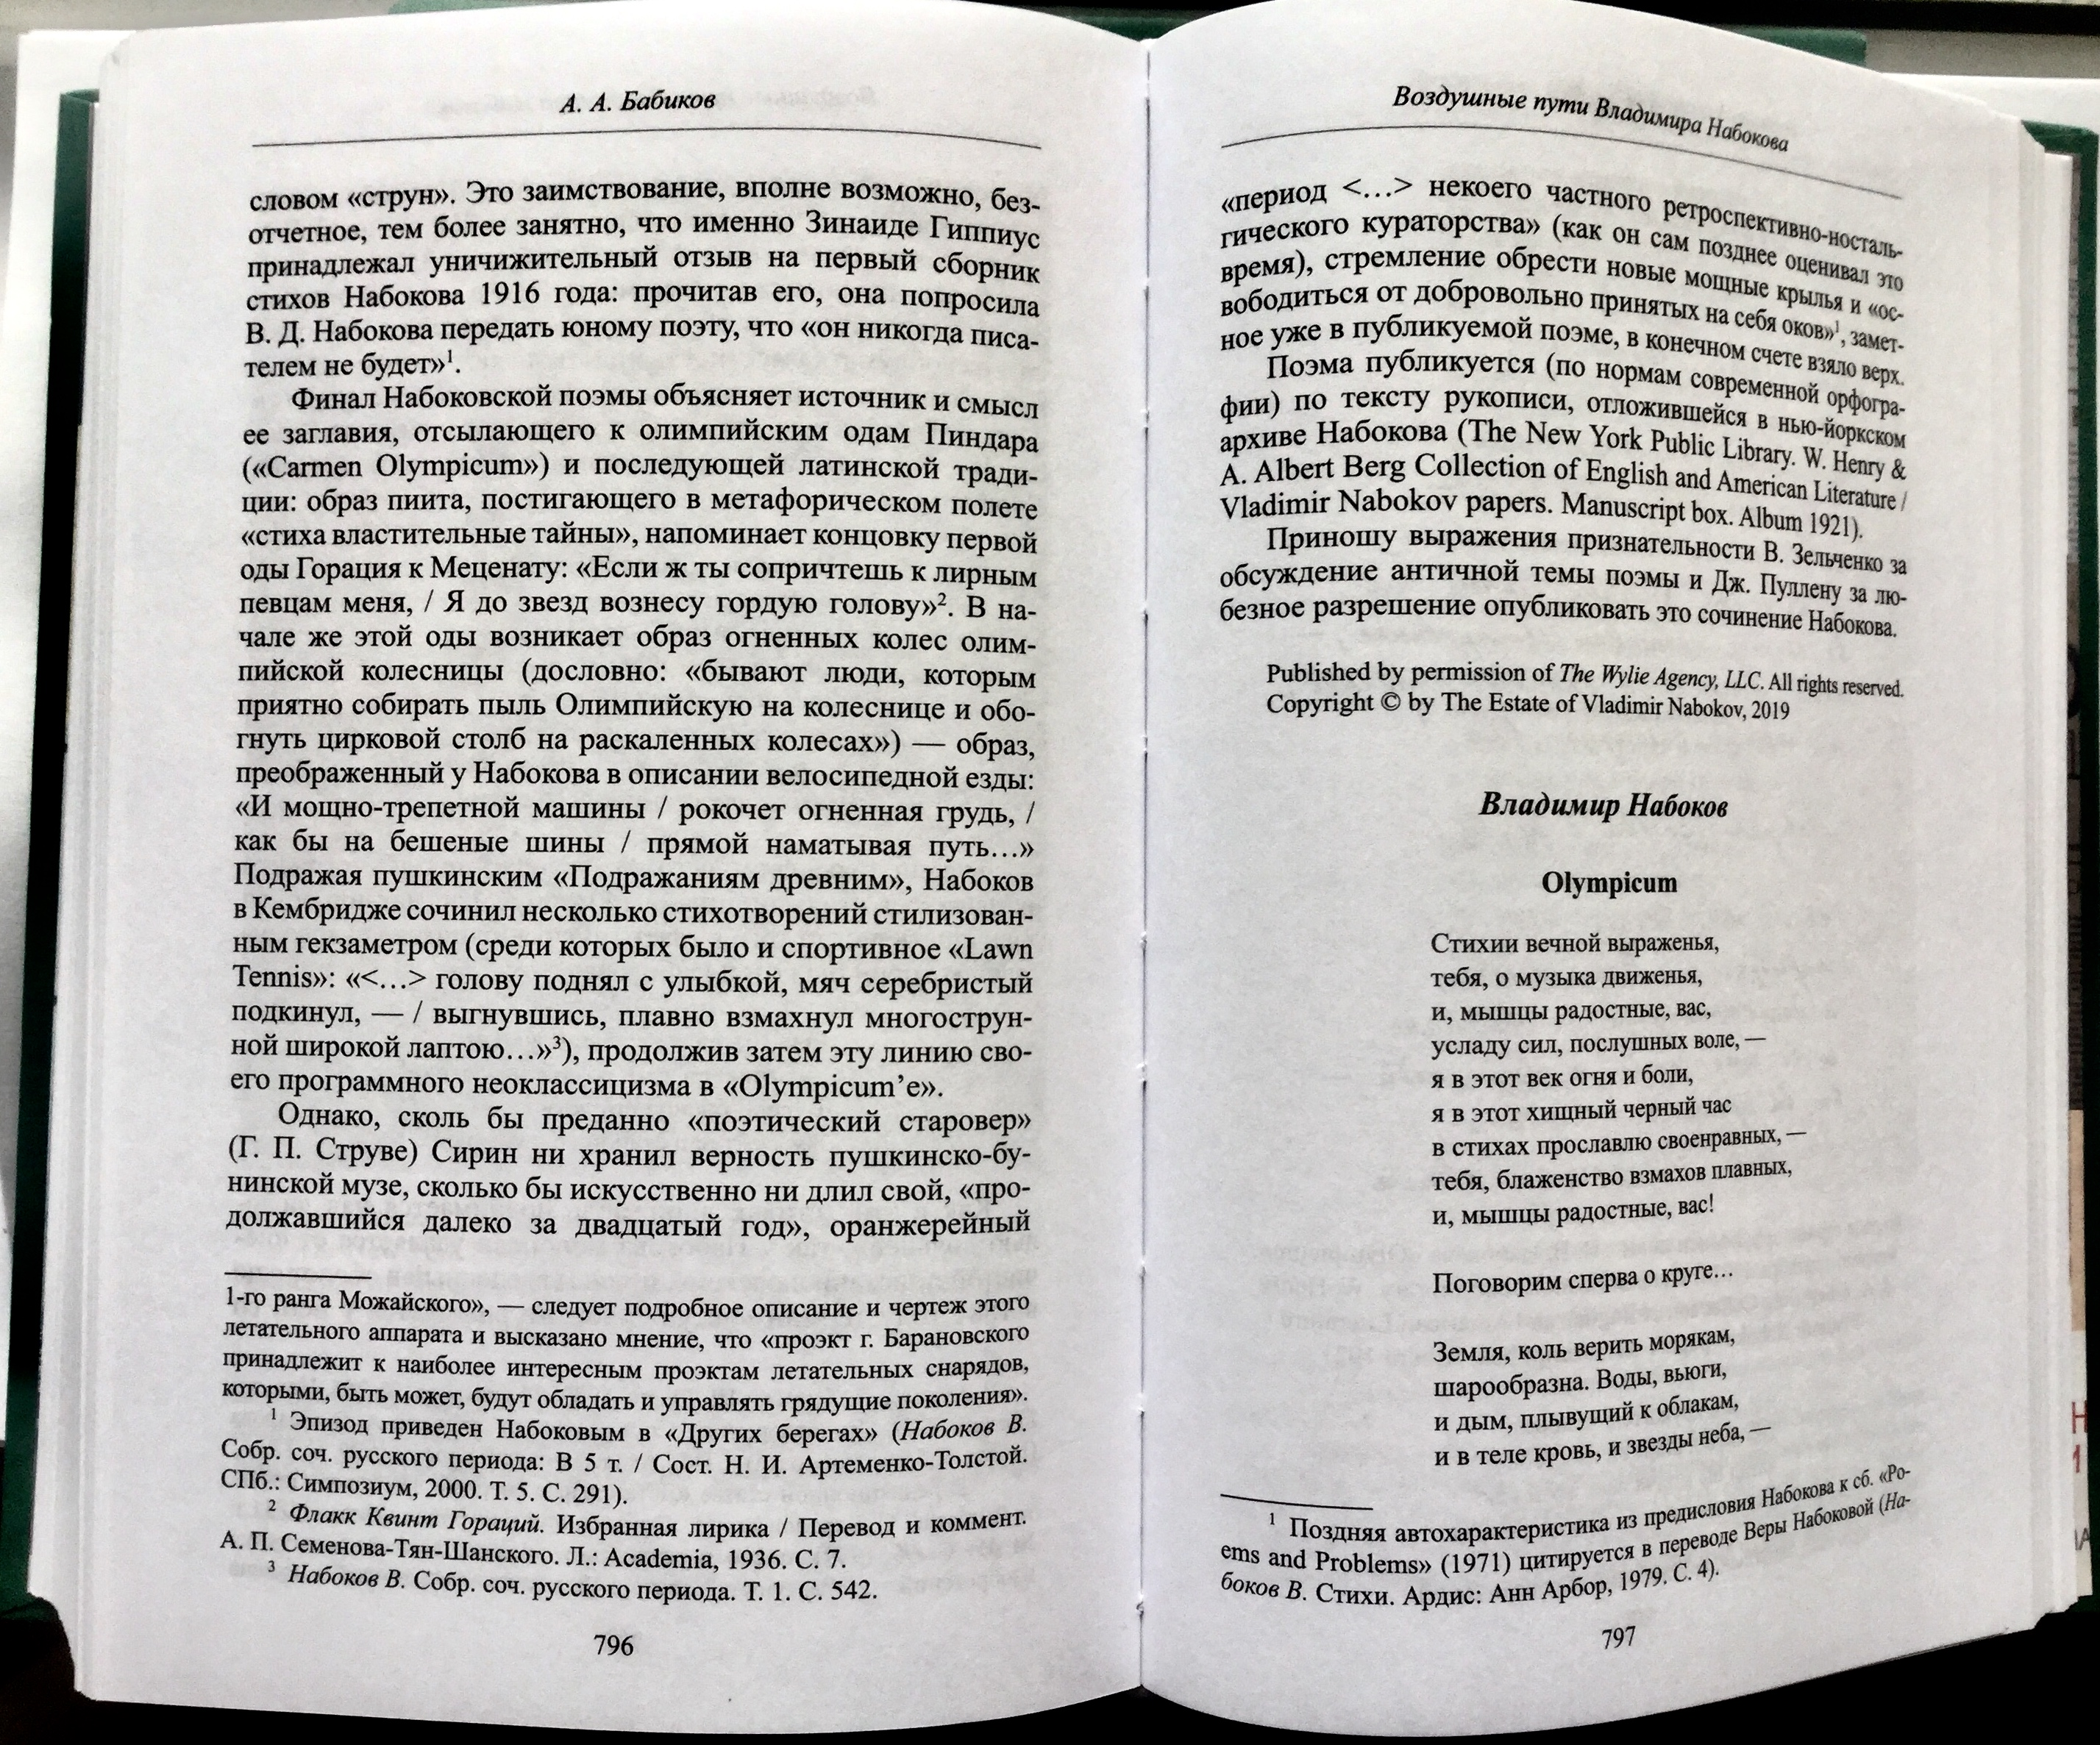 Two pages from the publication